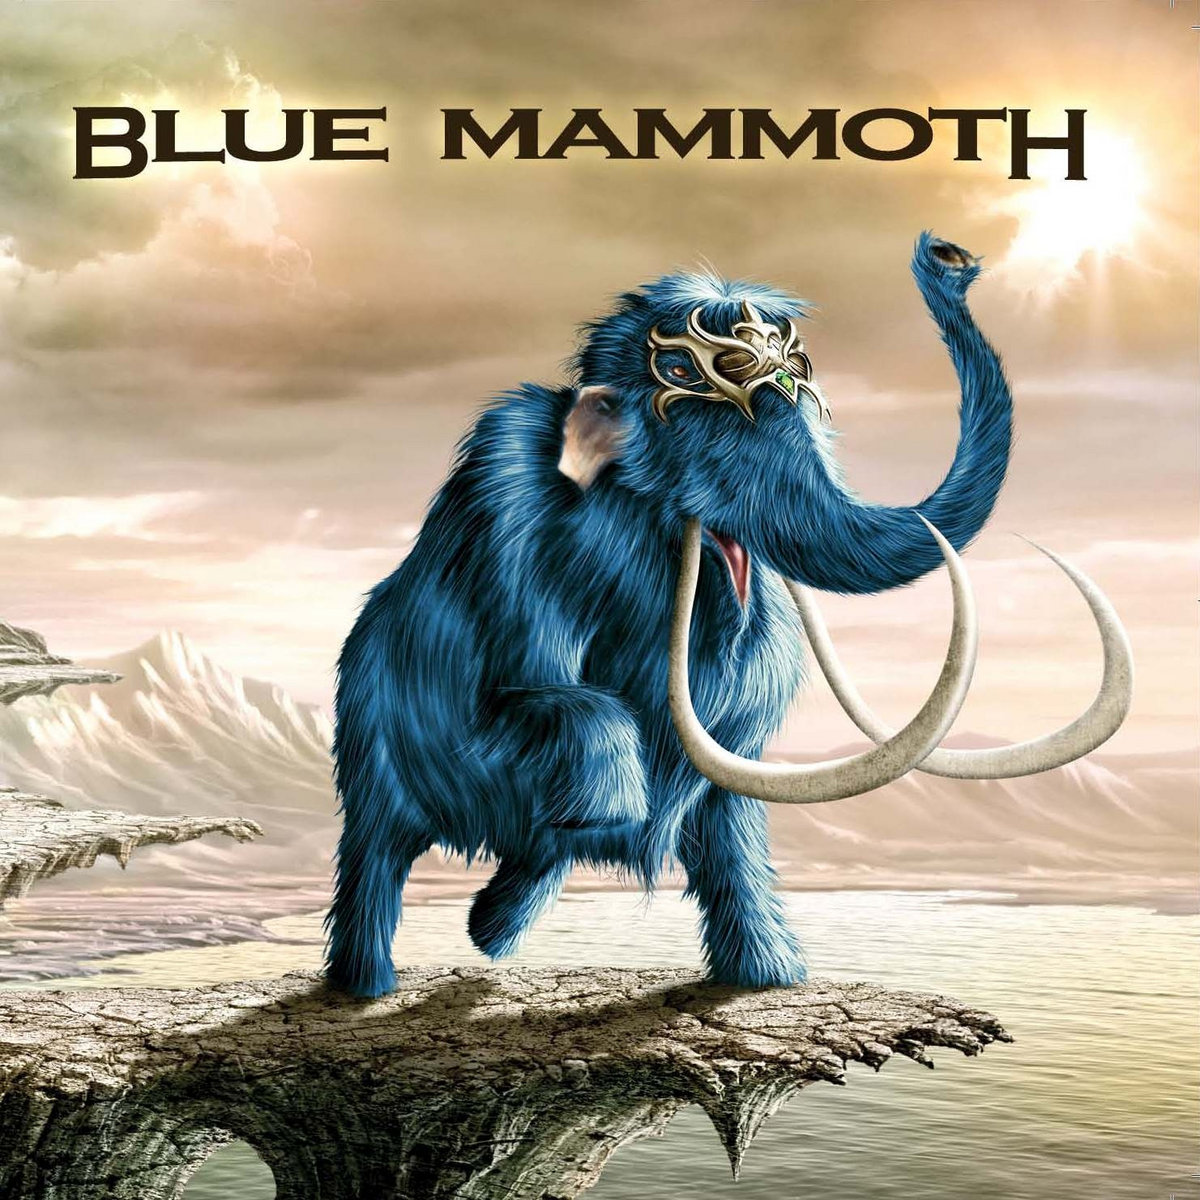 Blue Mammoth - Progressive Rock Band